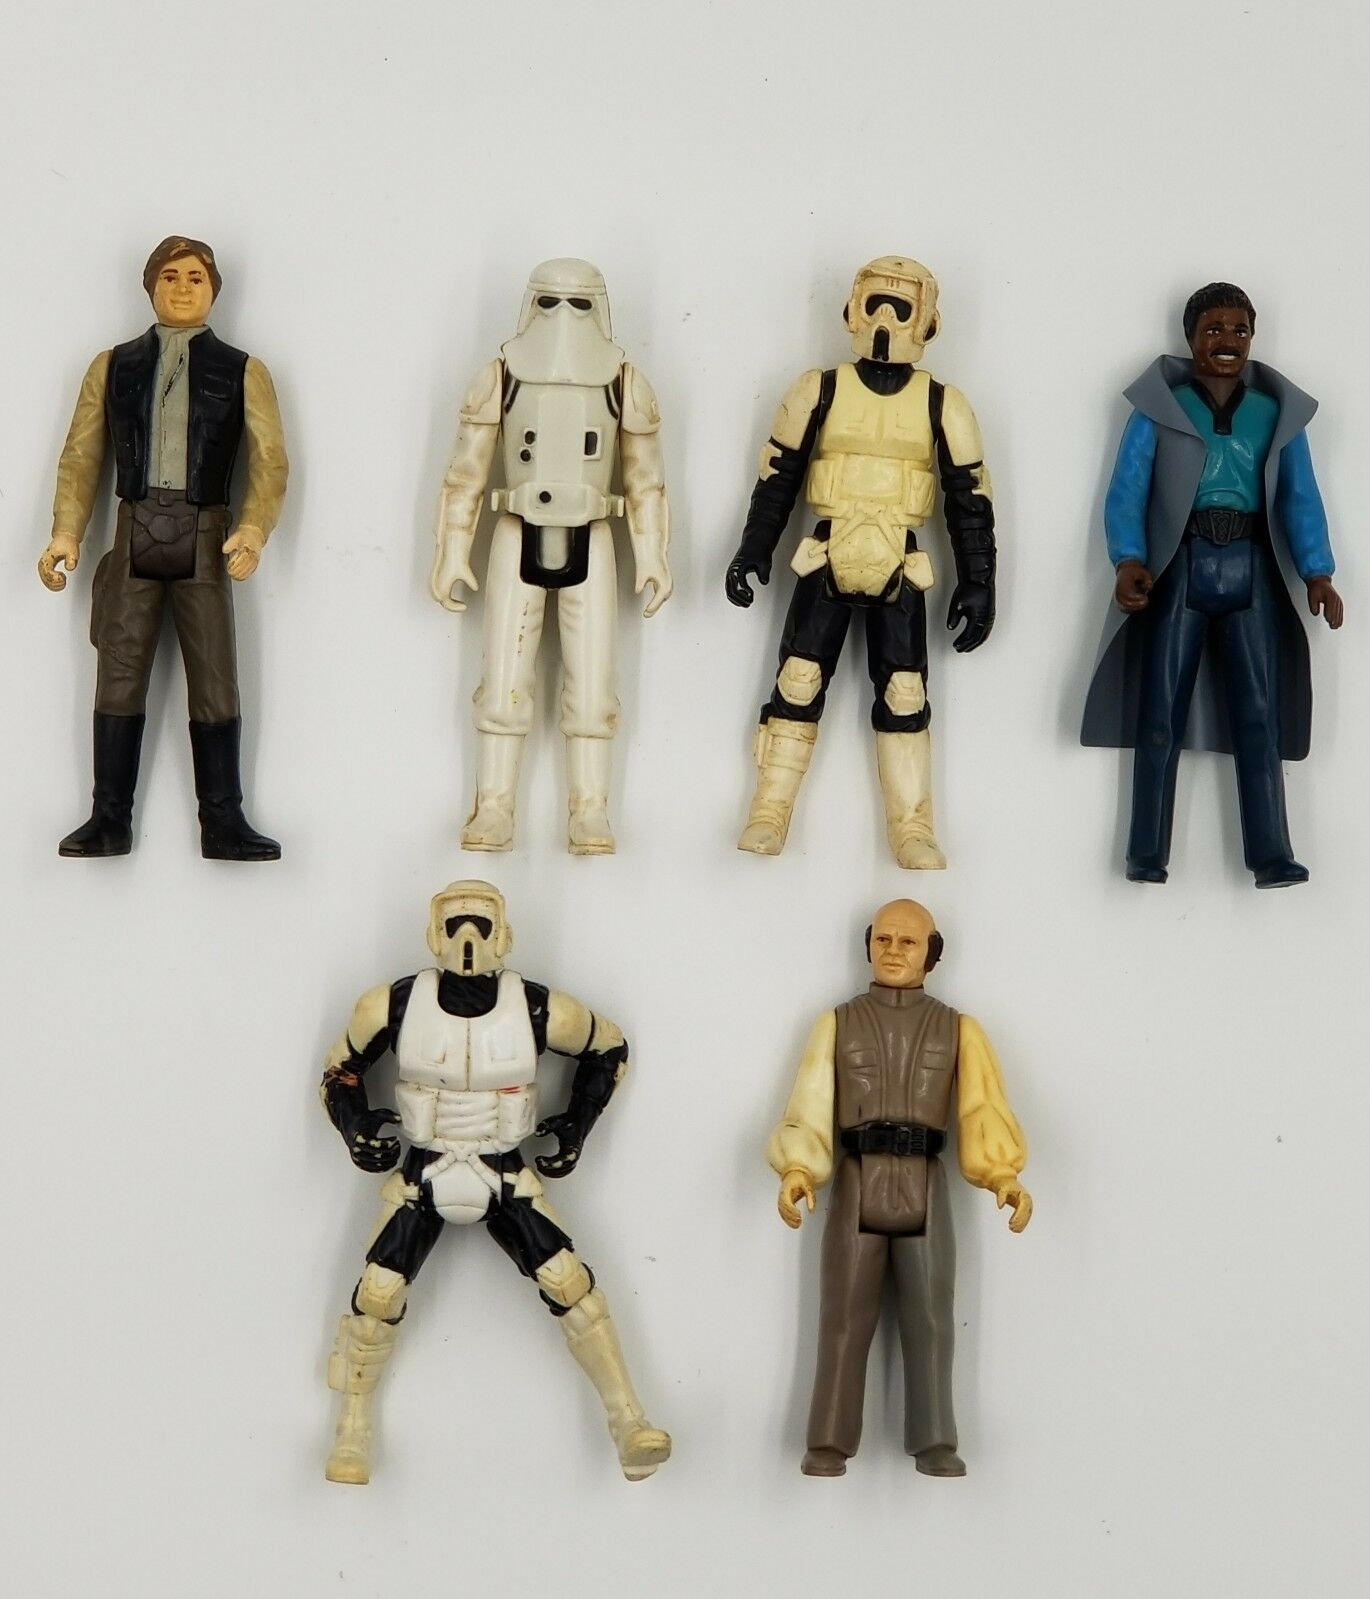 Vintage Vintage Vintage Star Wars Figures 1980s Lot Of 6 Hong Kong Hans Solo,StormTropper 867074